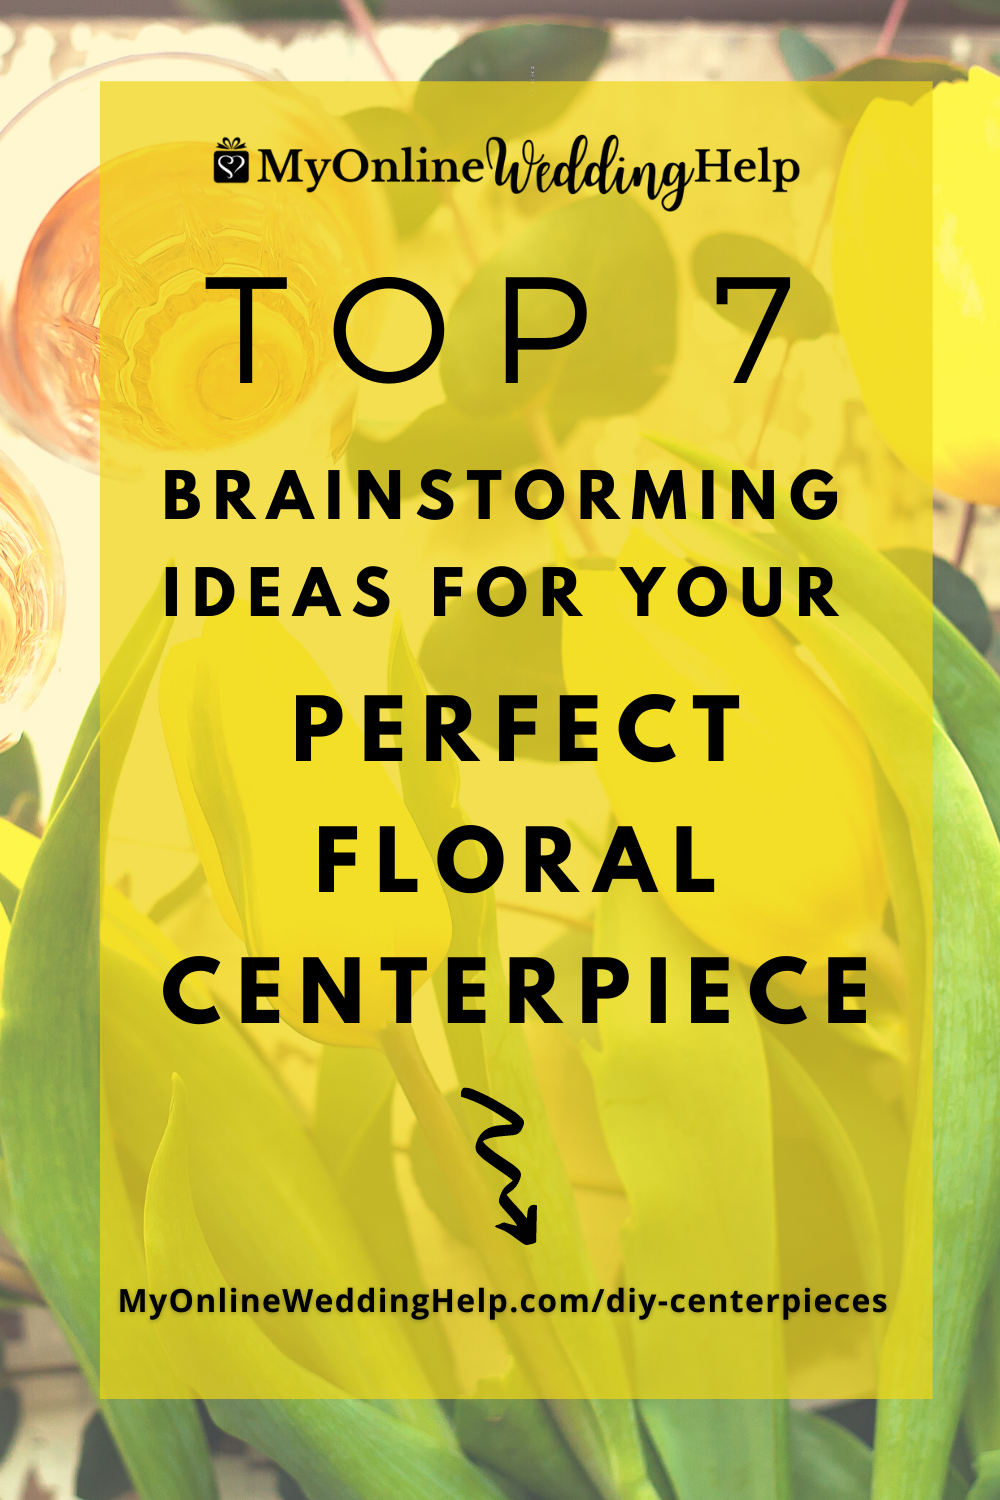 Top 7 Brainstorming Ideas for your Perfect Floral Centerpiece. text with yellow and tulips on a table underneath.